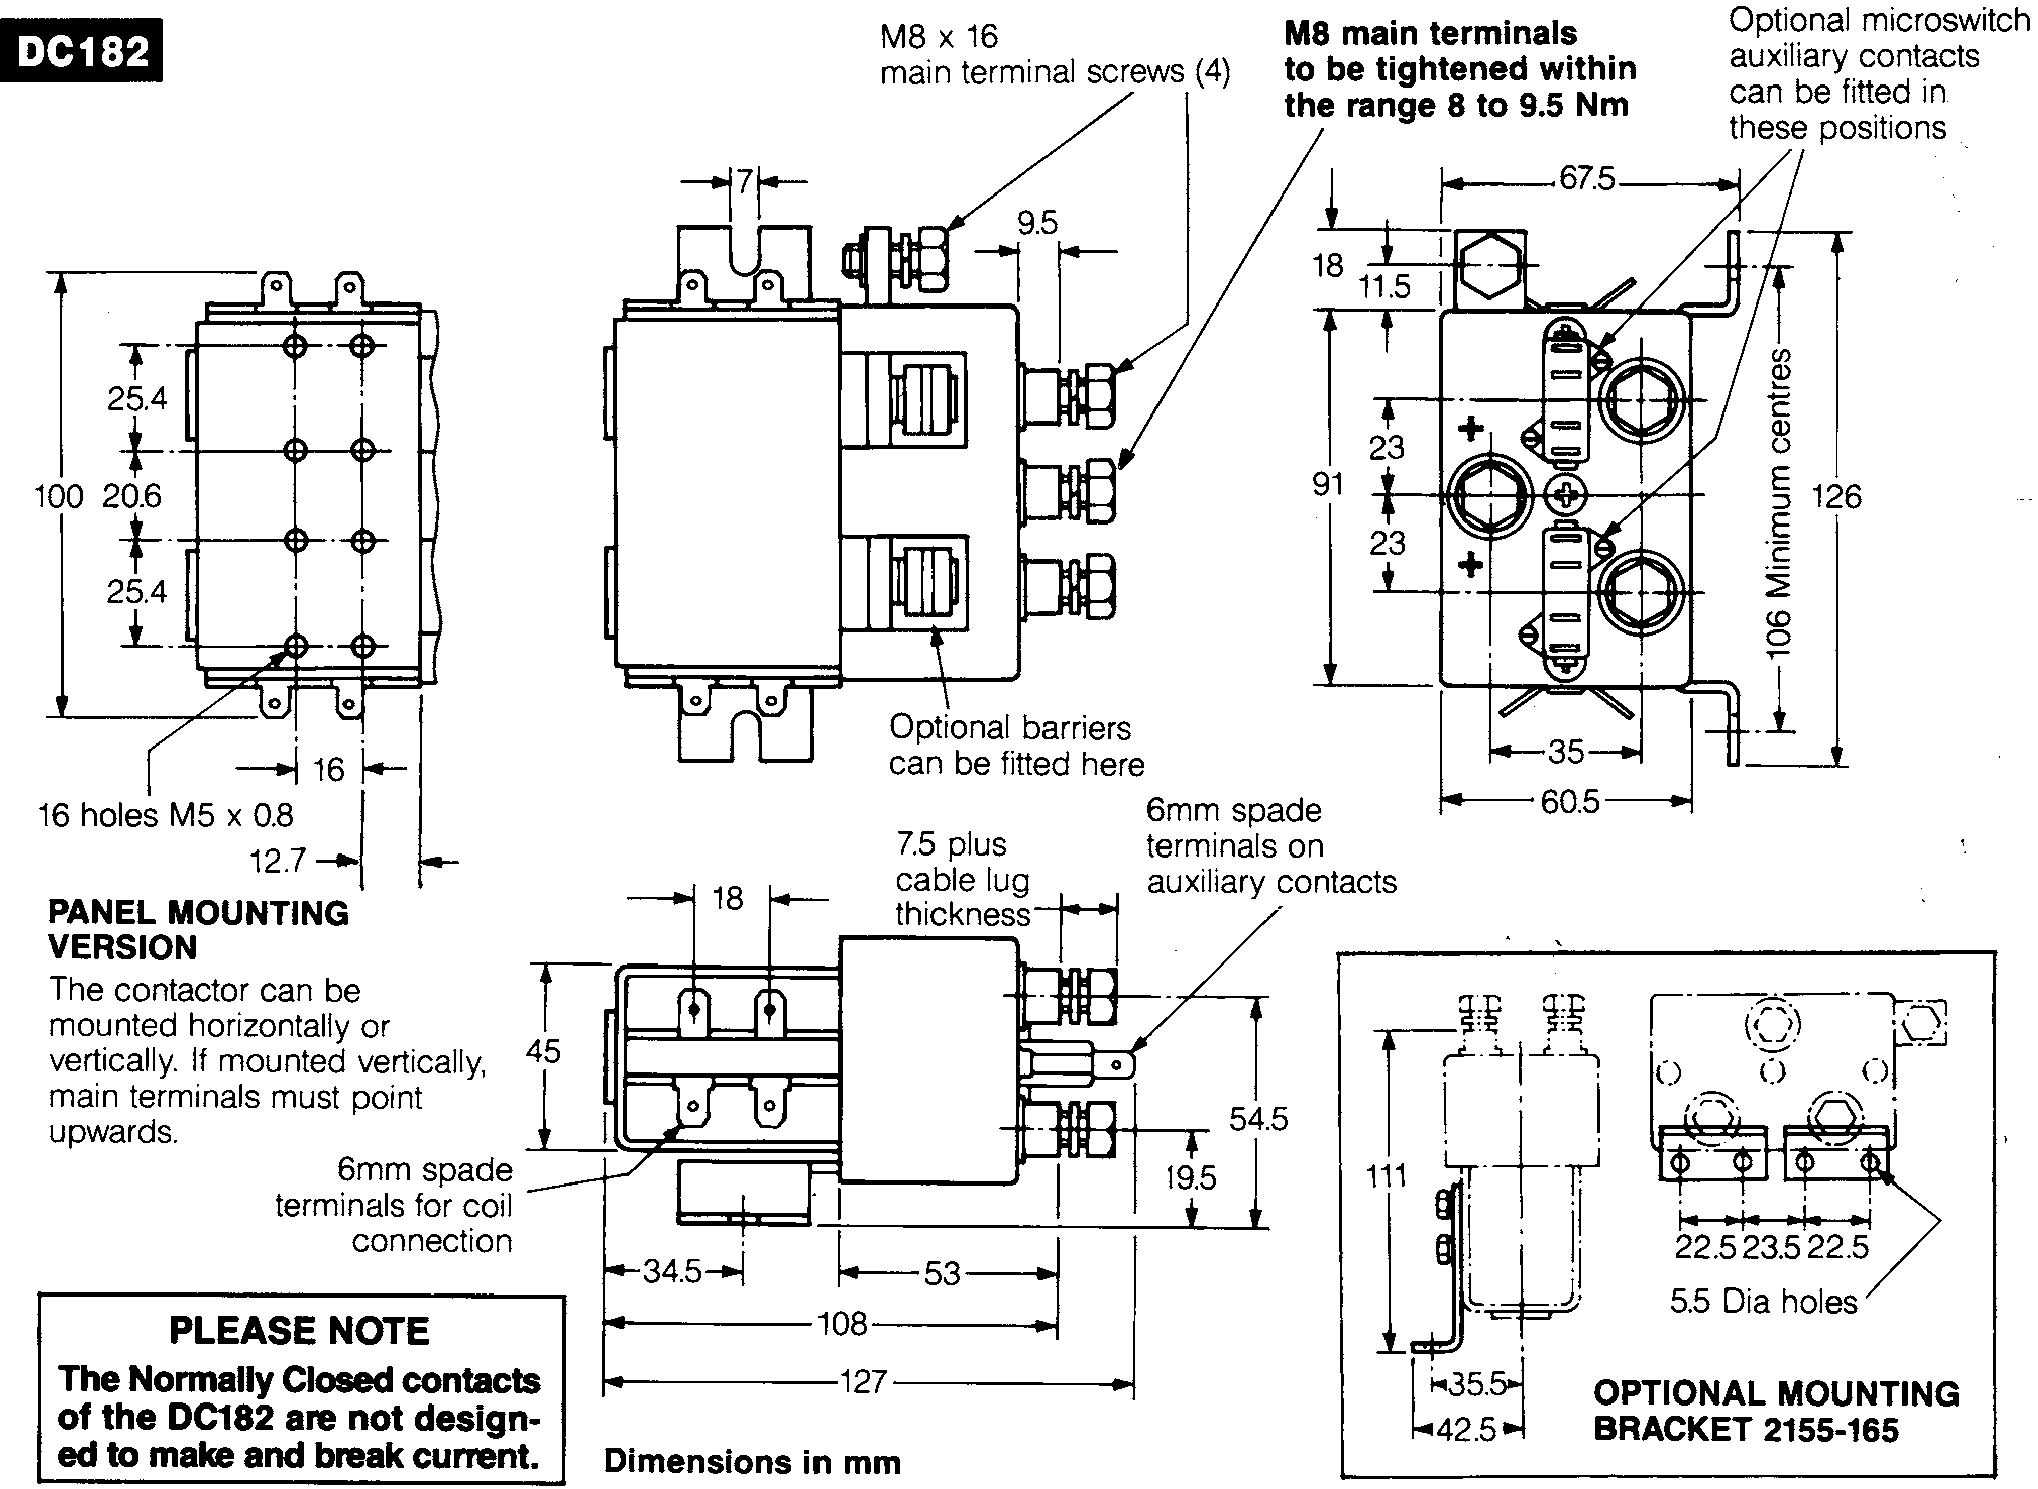 ge dc contactor wiring diagram free download dc contactor wiring diagram free picture schematic